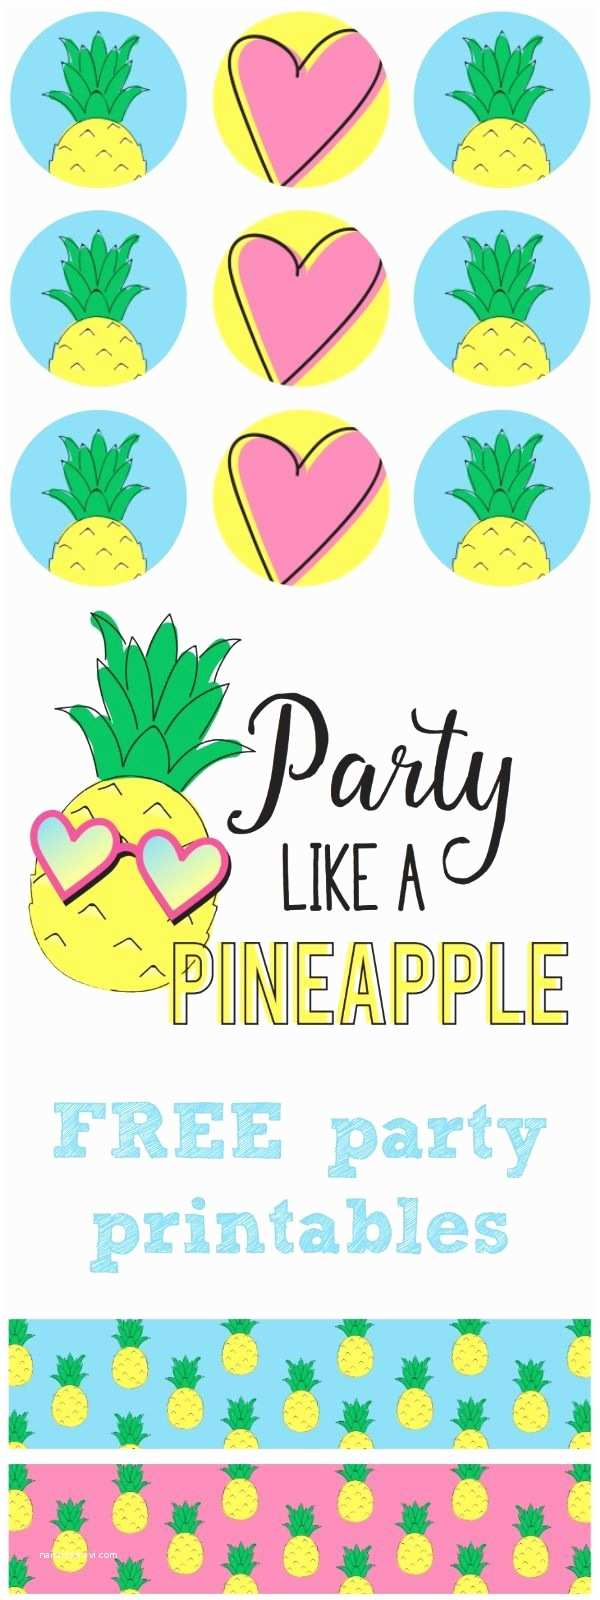 Pineapple Party Invitations Party Like A Pineapple Plete Free Printable Party Set